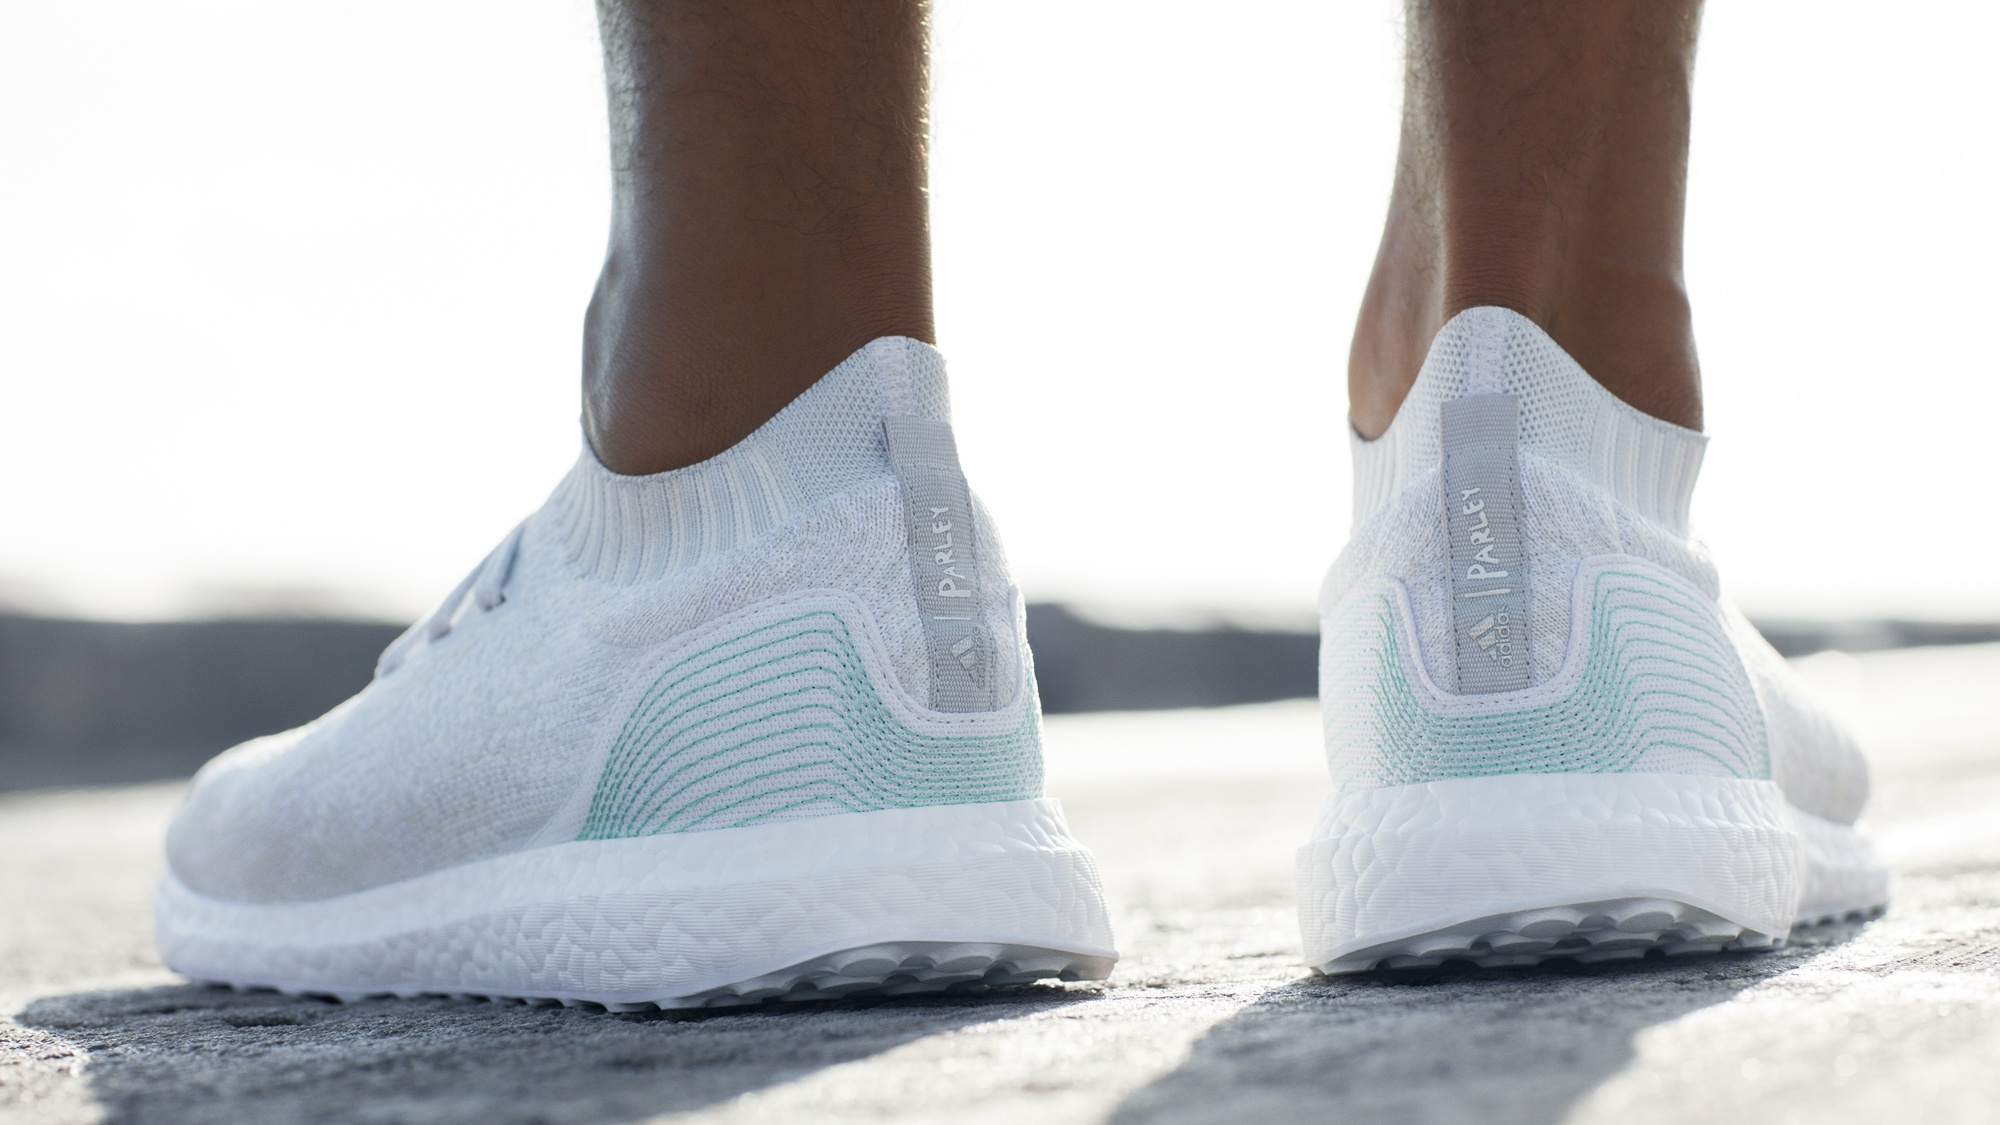 8e53920b0e1 Adidas is making a million pairs of its much-anticipated sneakers created  from recycled ocean plastic